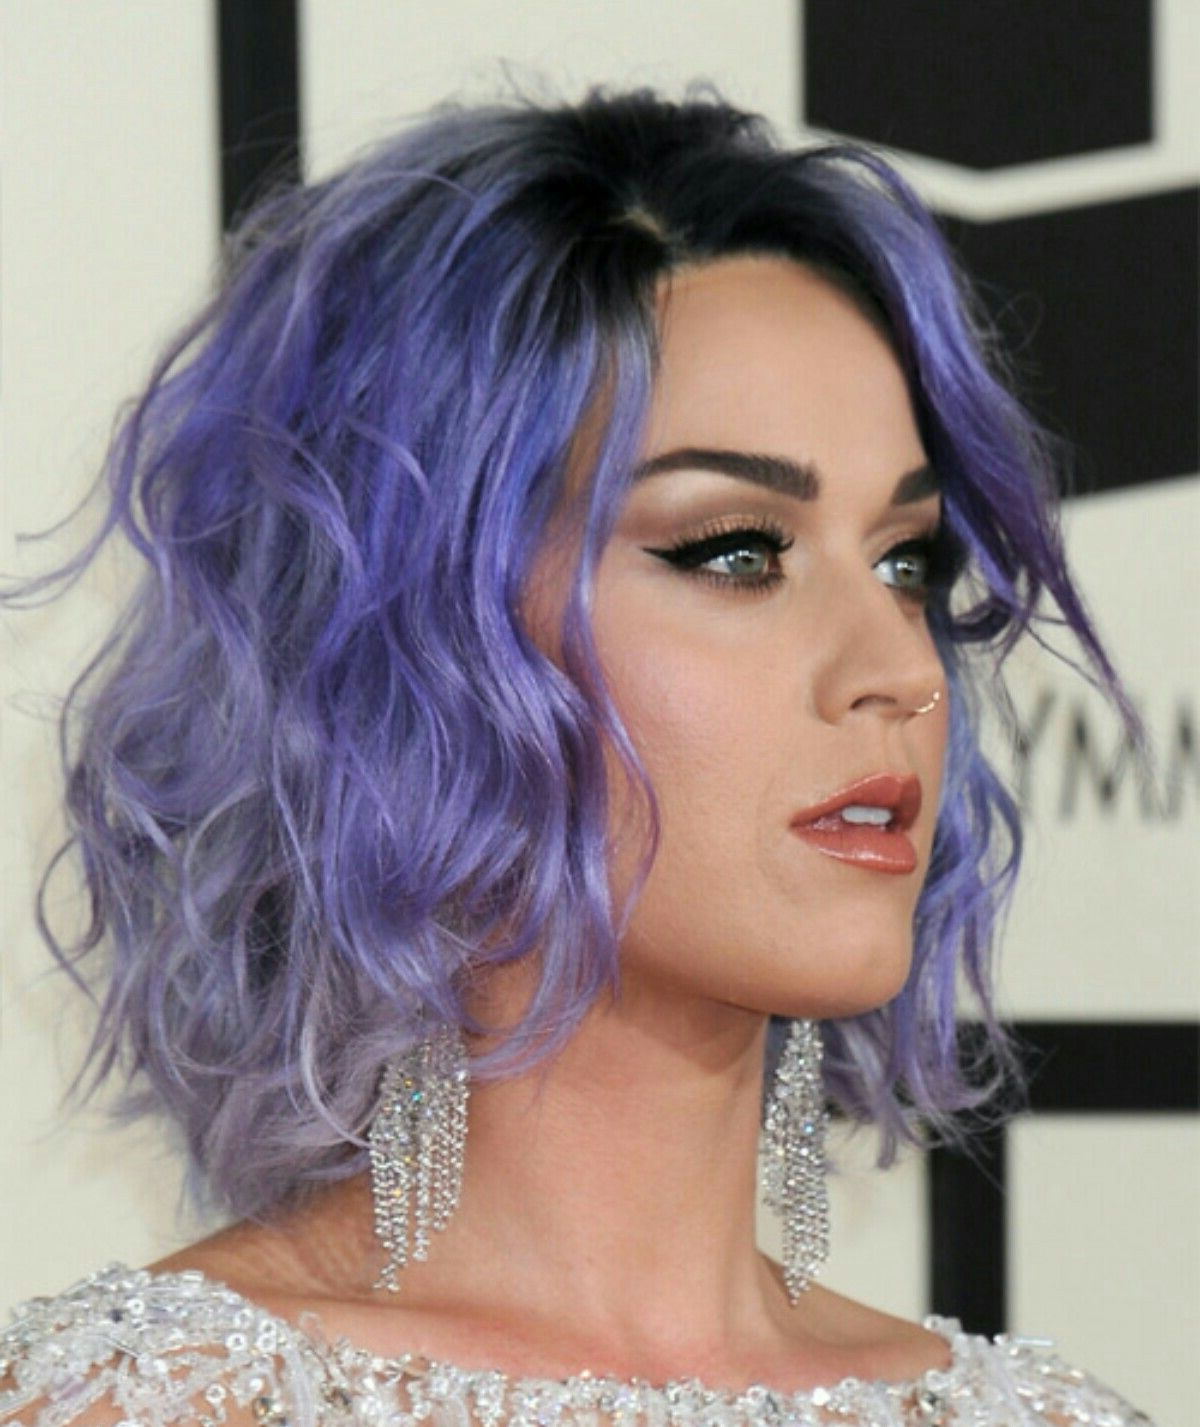 Famous Katy Perry Medium Hairstyles Regarding Pinchloe Crothers On Katy Perry (View 4 of 20)